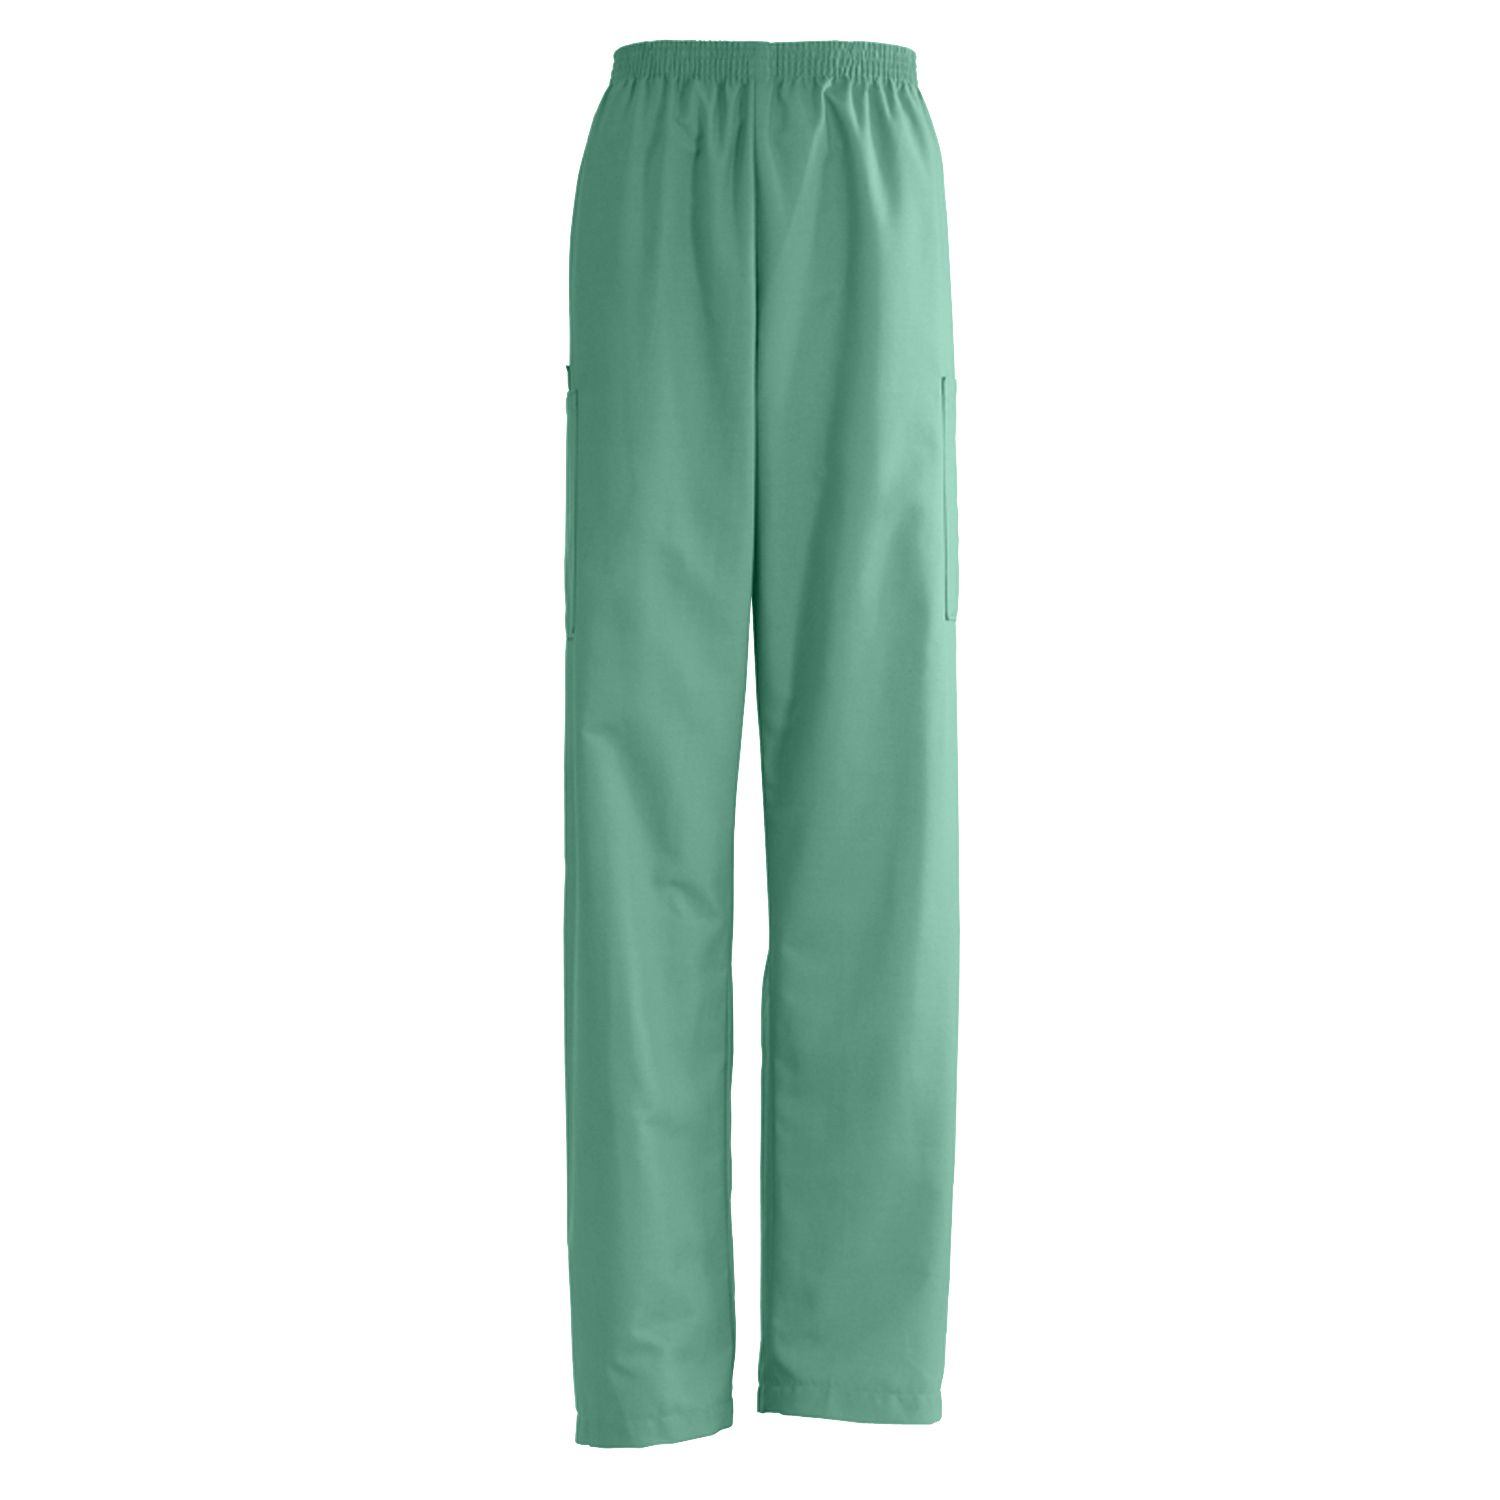 Medline AngelStat Unisex Elastic Waist Cargo Scrub Pants - Jade, Md, Md, Each - Model 674NTJMM